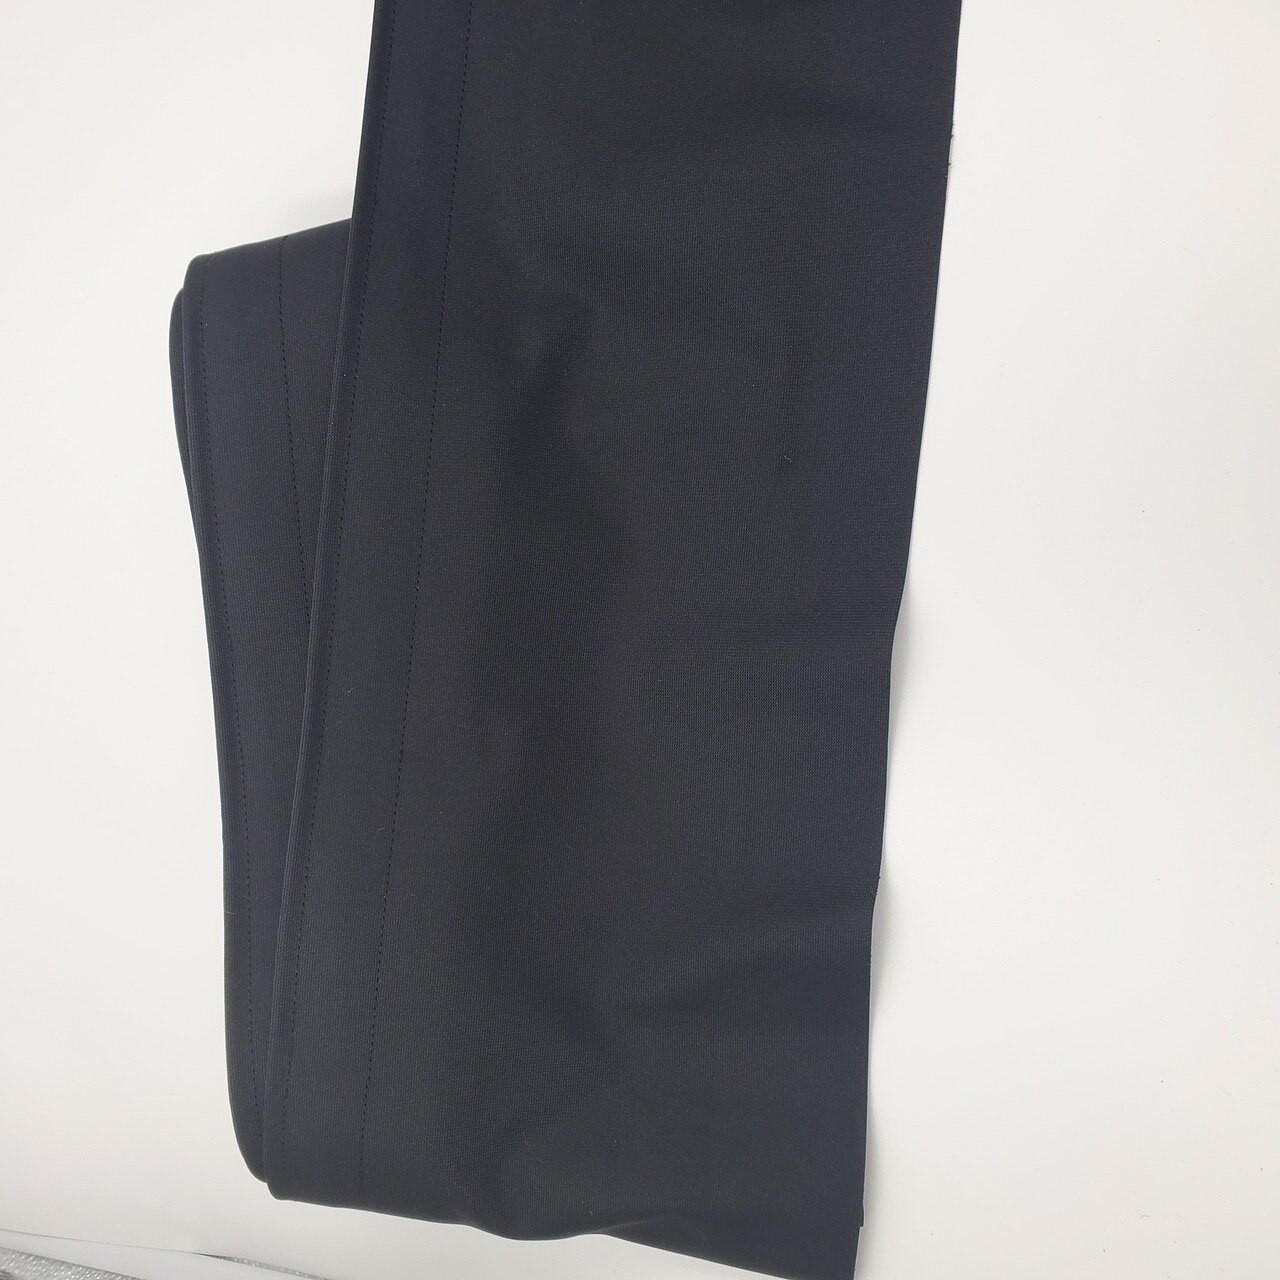 """Best rated Closeout!  8"""" High x 24' Long Black Flat (No Pleat) Poly Premier Stage Skirting with Loop Velcro sewn on the back - Front Side"""